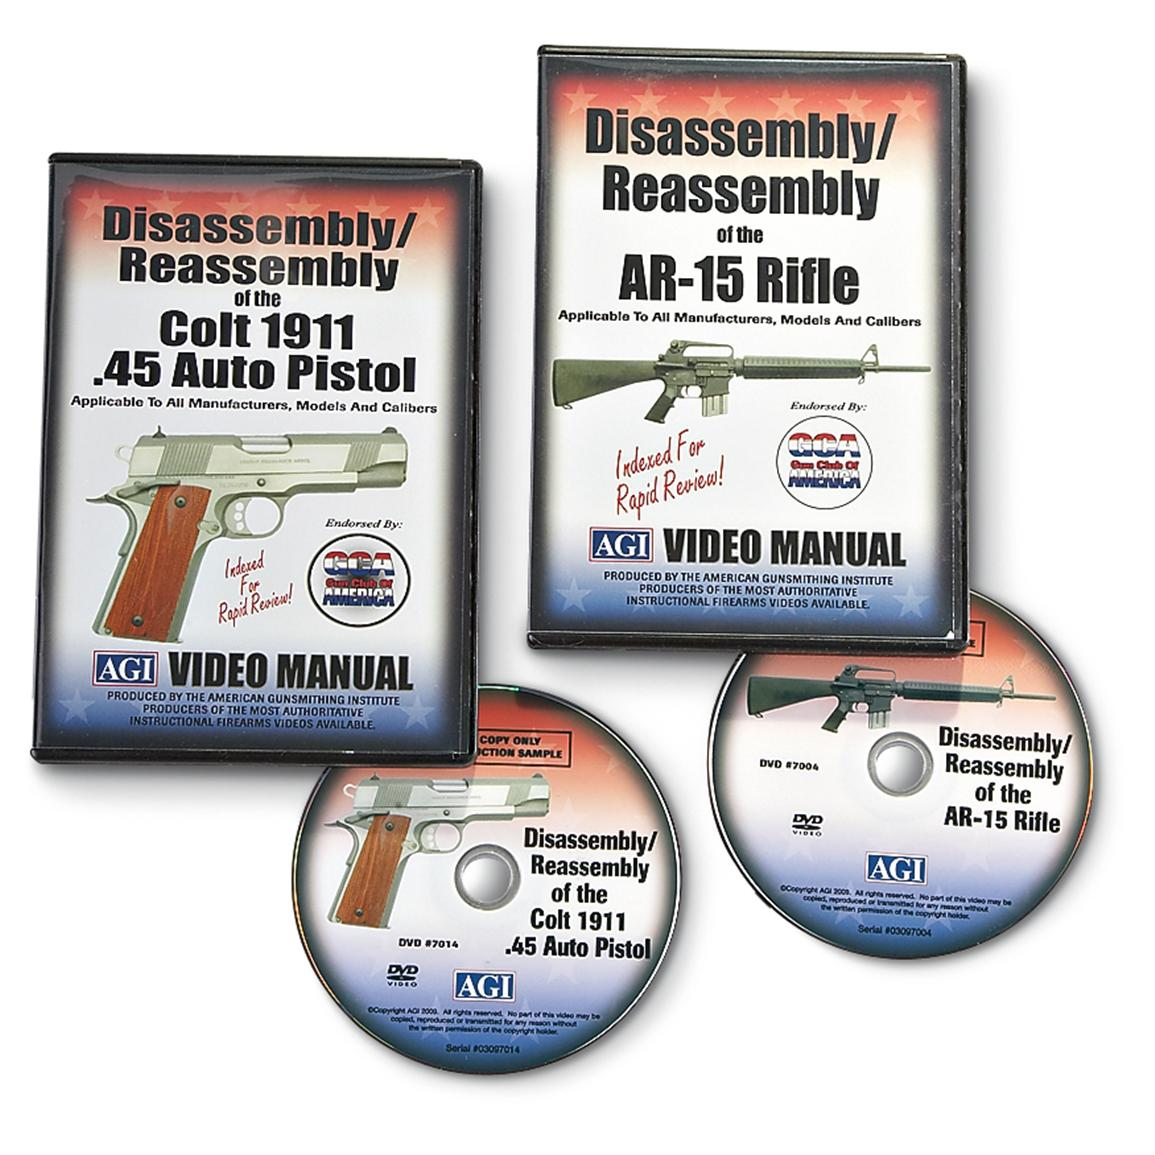 American Gunsmithing Institute Disassembly / Reassembly DVD Manual